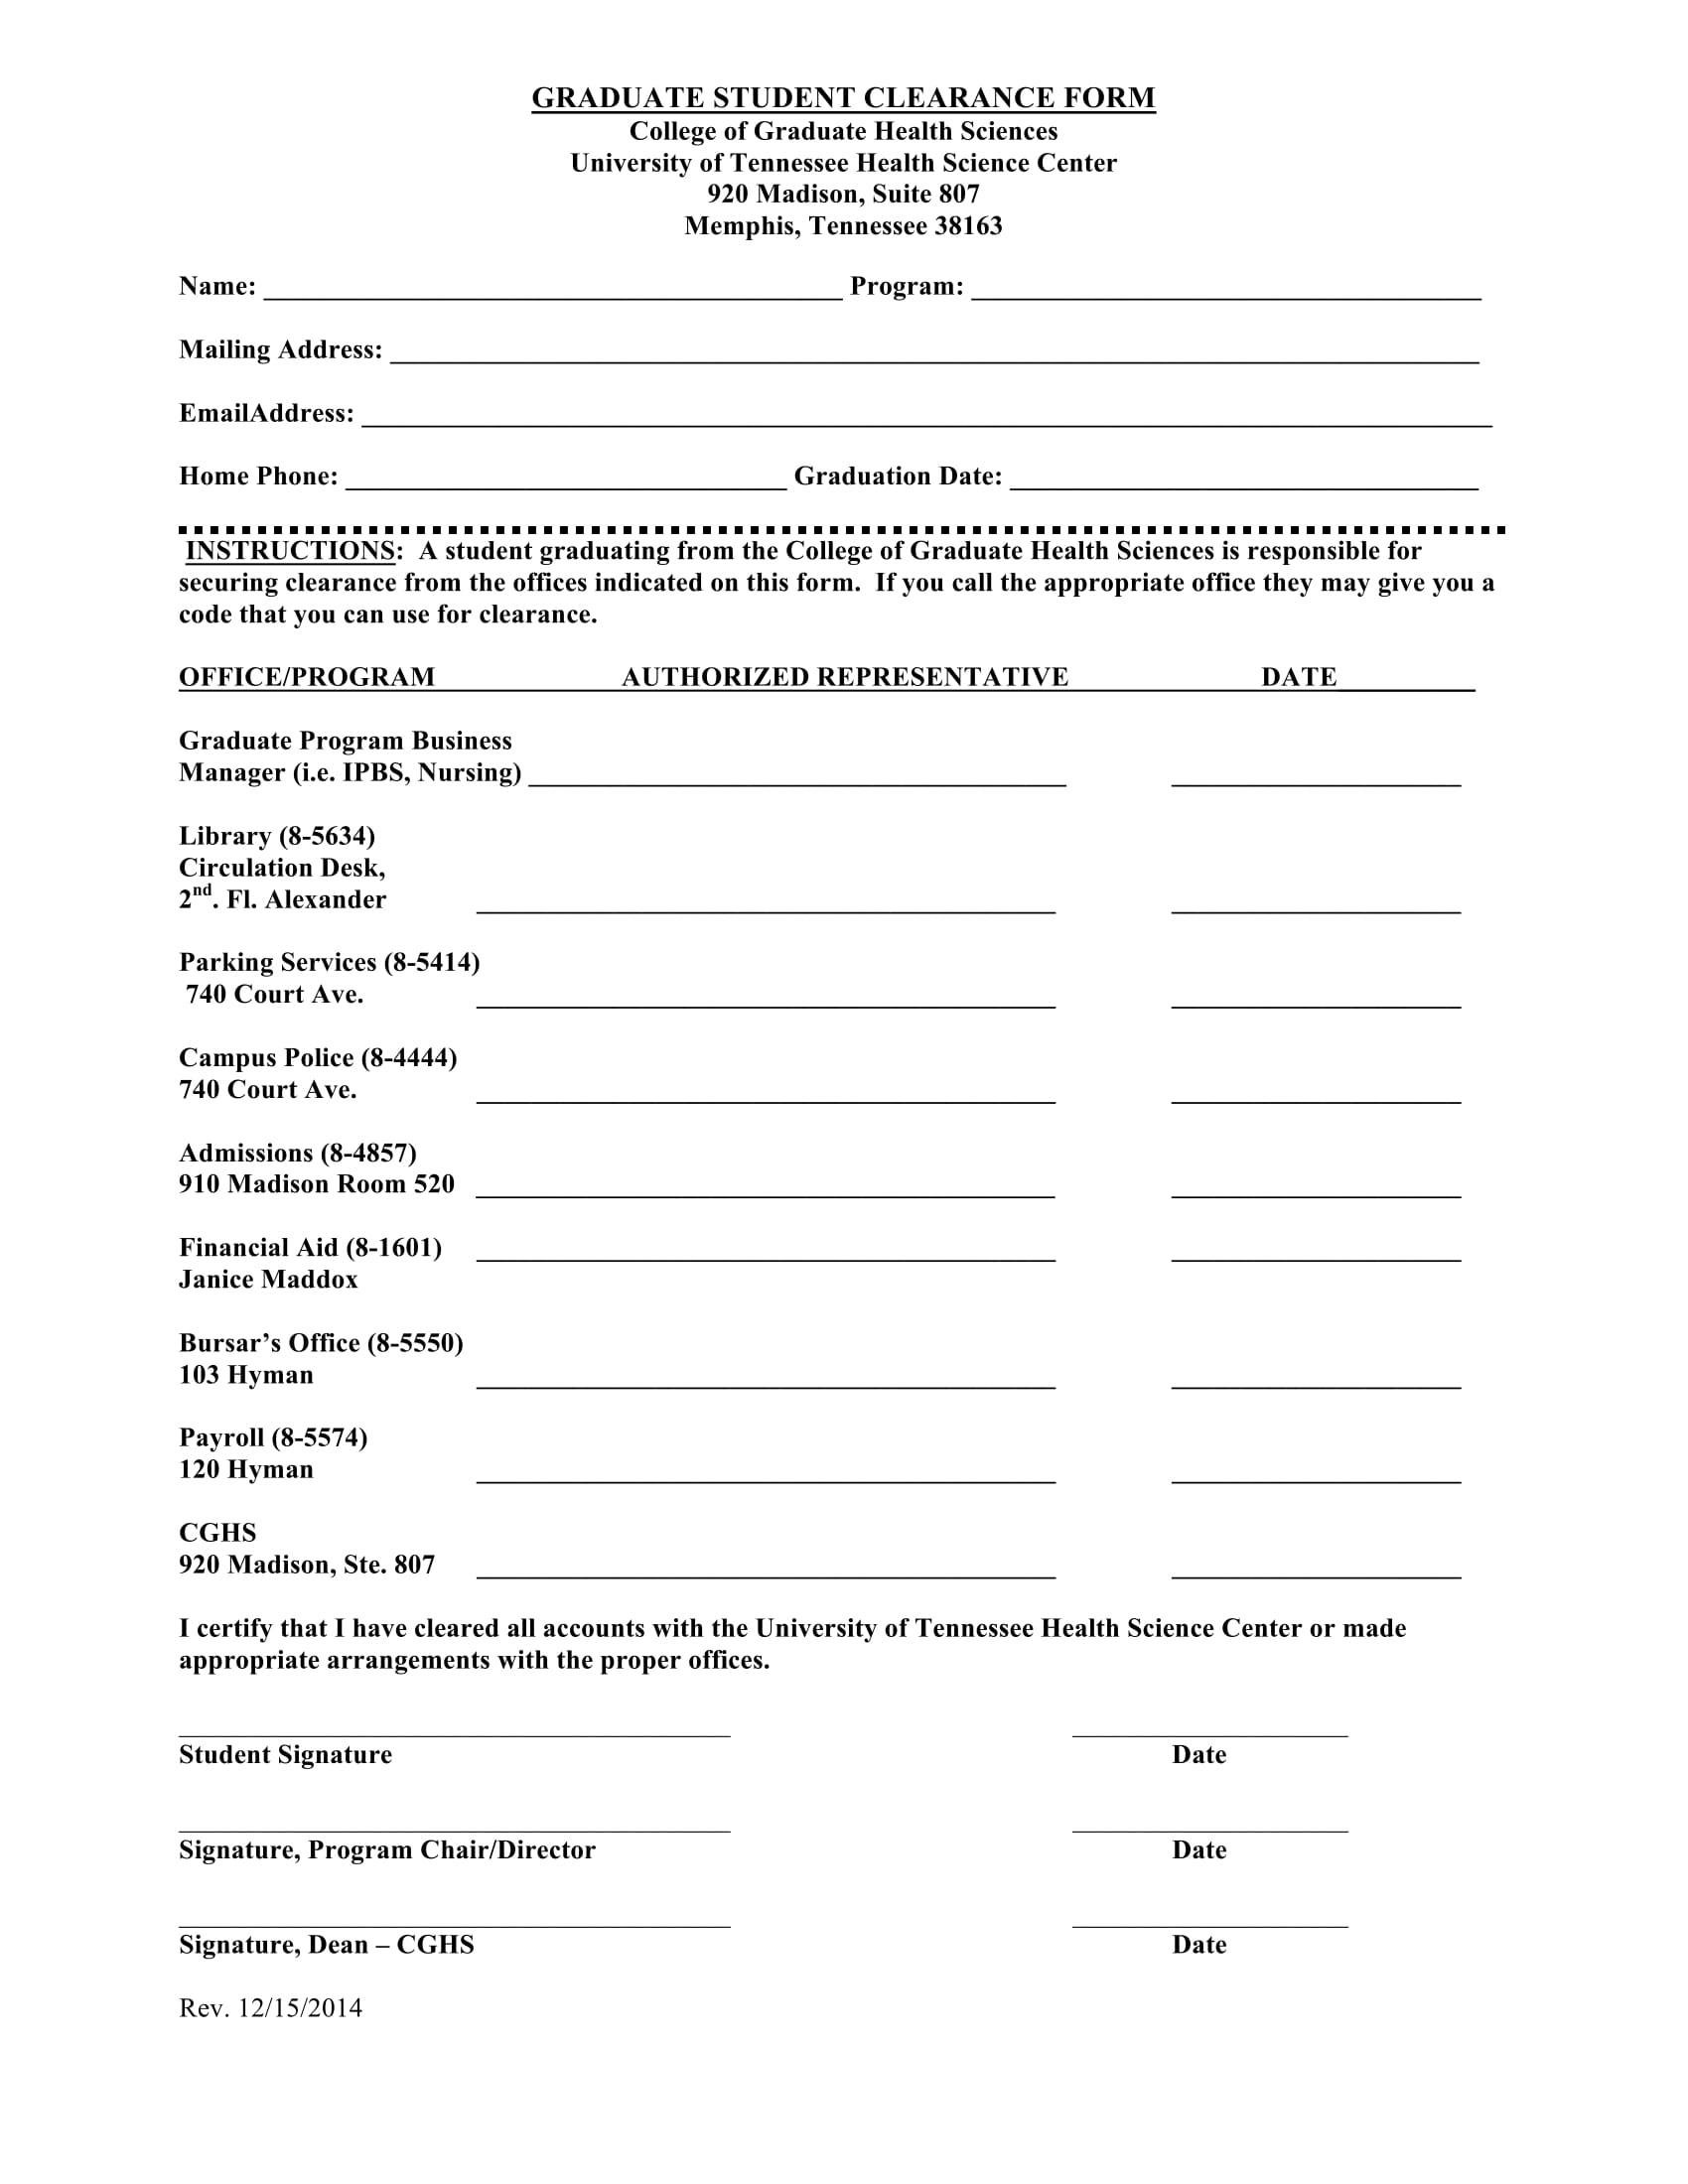 graduate student clearance form 1